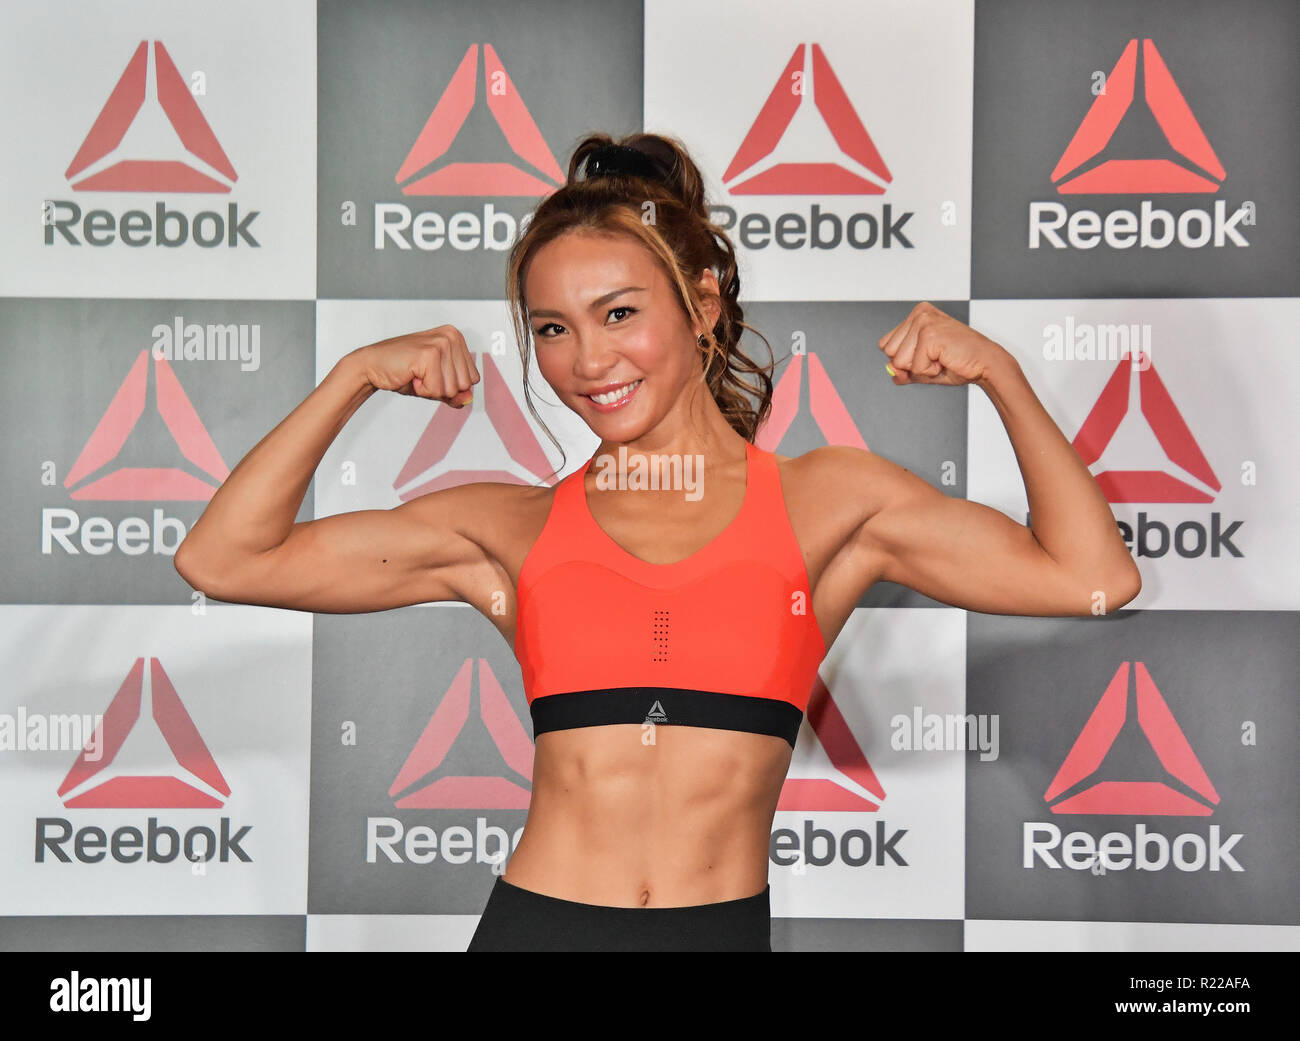 how to become a reebok fitness trainer